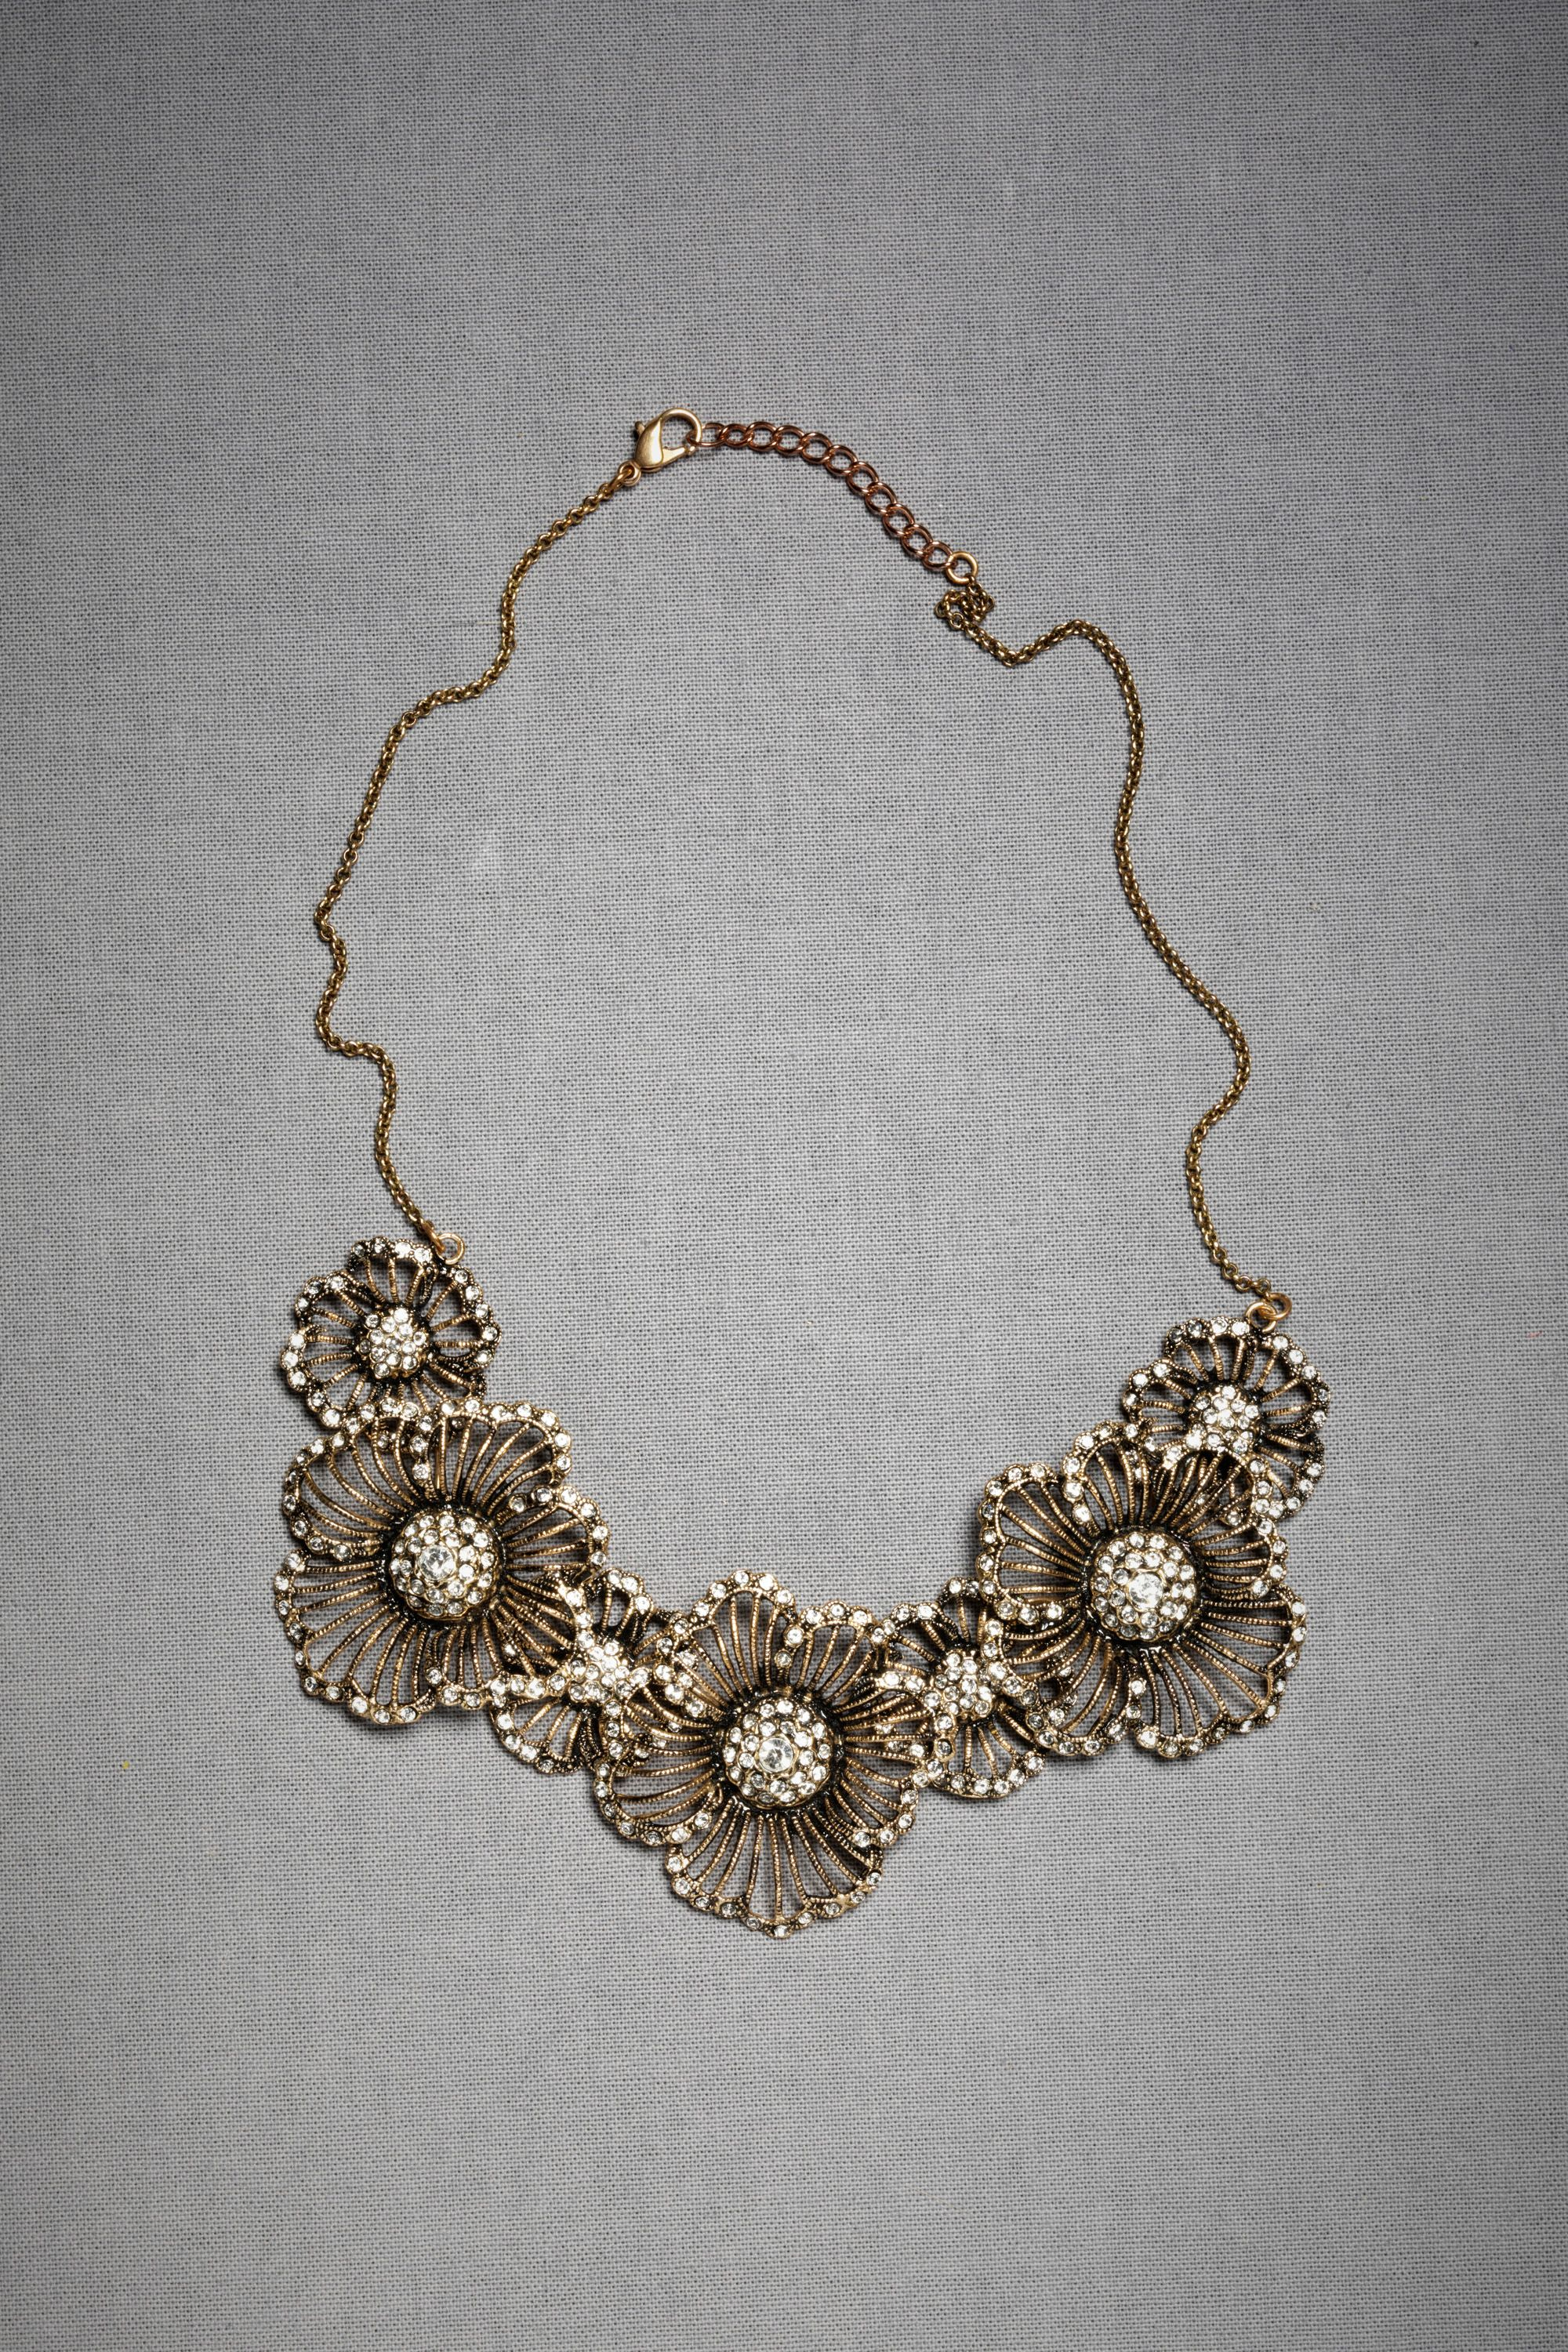 Hinted Phlox Necklace